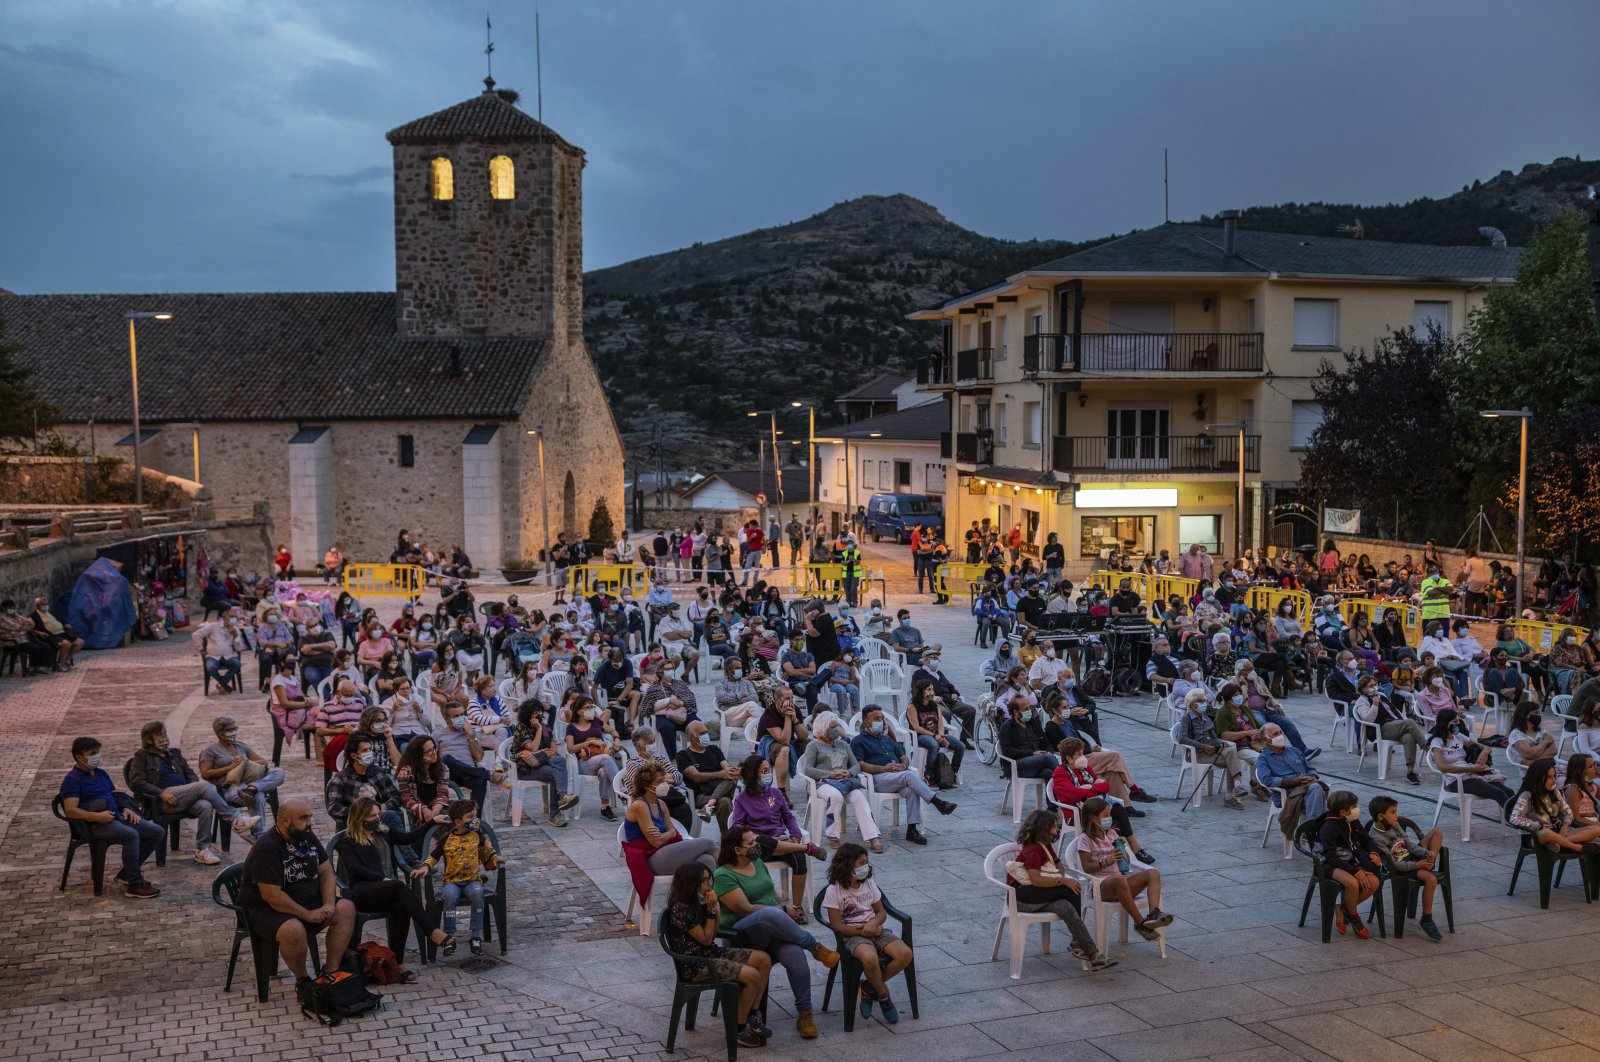 Spectators wearing face masks and keeping social distance to protect against the coronavirus attend an entertainment show in the village of Bustarviejo in the outskirts of Madrid, Spain, Sept. 14, 2020. (AP Photo)